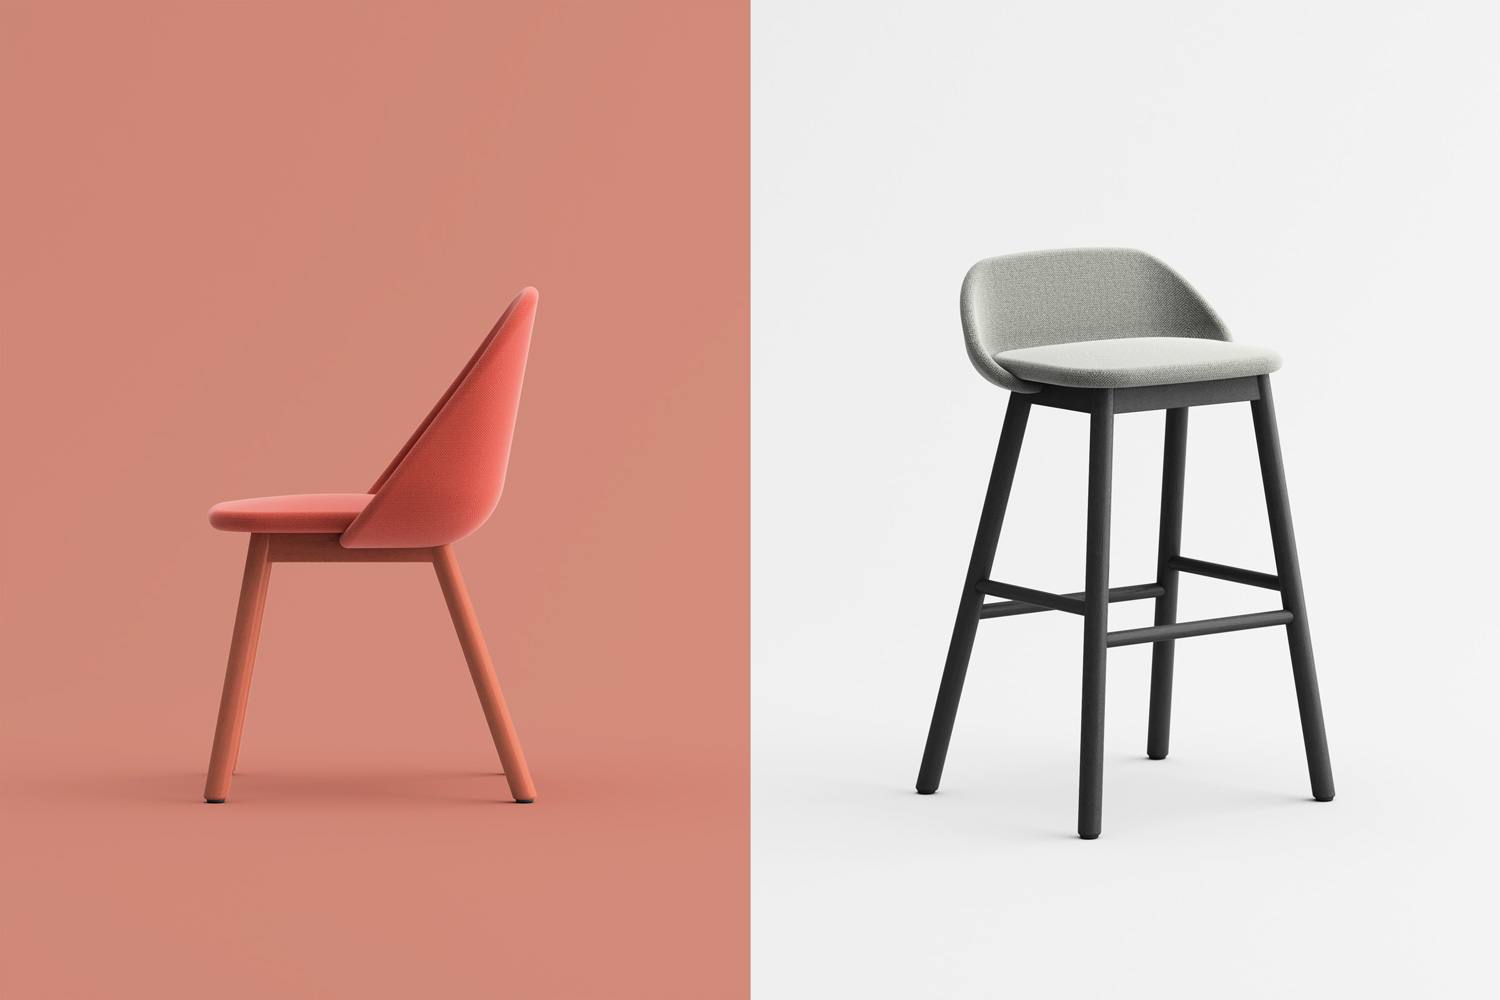 Spoon chair and barstool